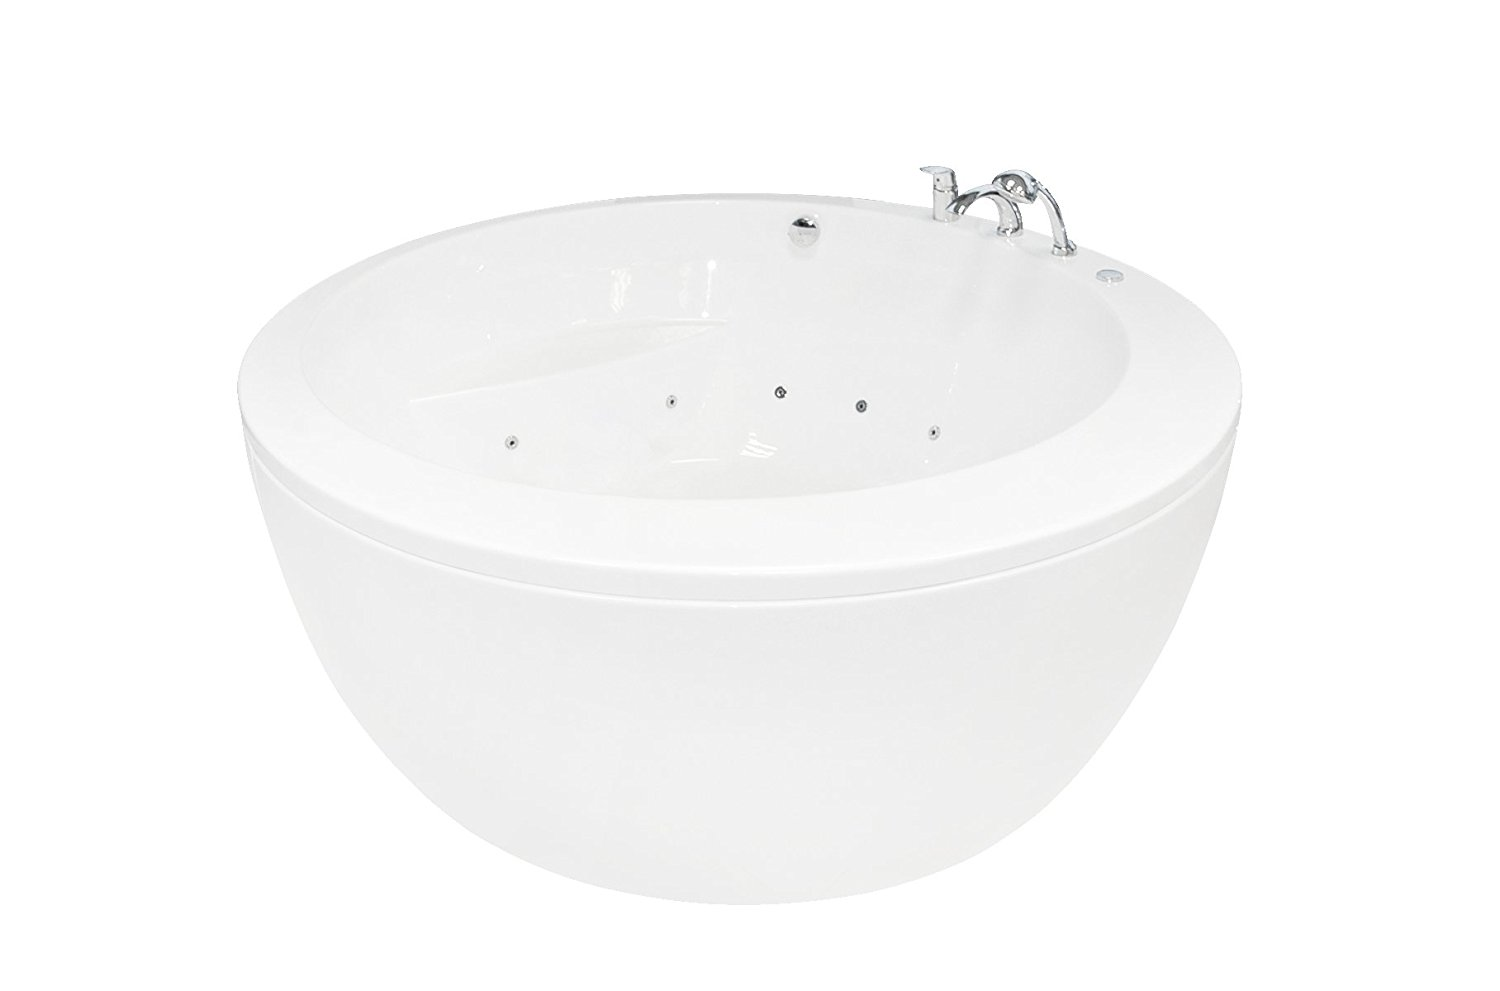 Aquatica Pamela-Wht-Rlx Freestanding Lucite Acrylic Bathtub with Airmassage and Hydromassage Jets and Chromotherapy Lighting, White